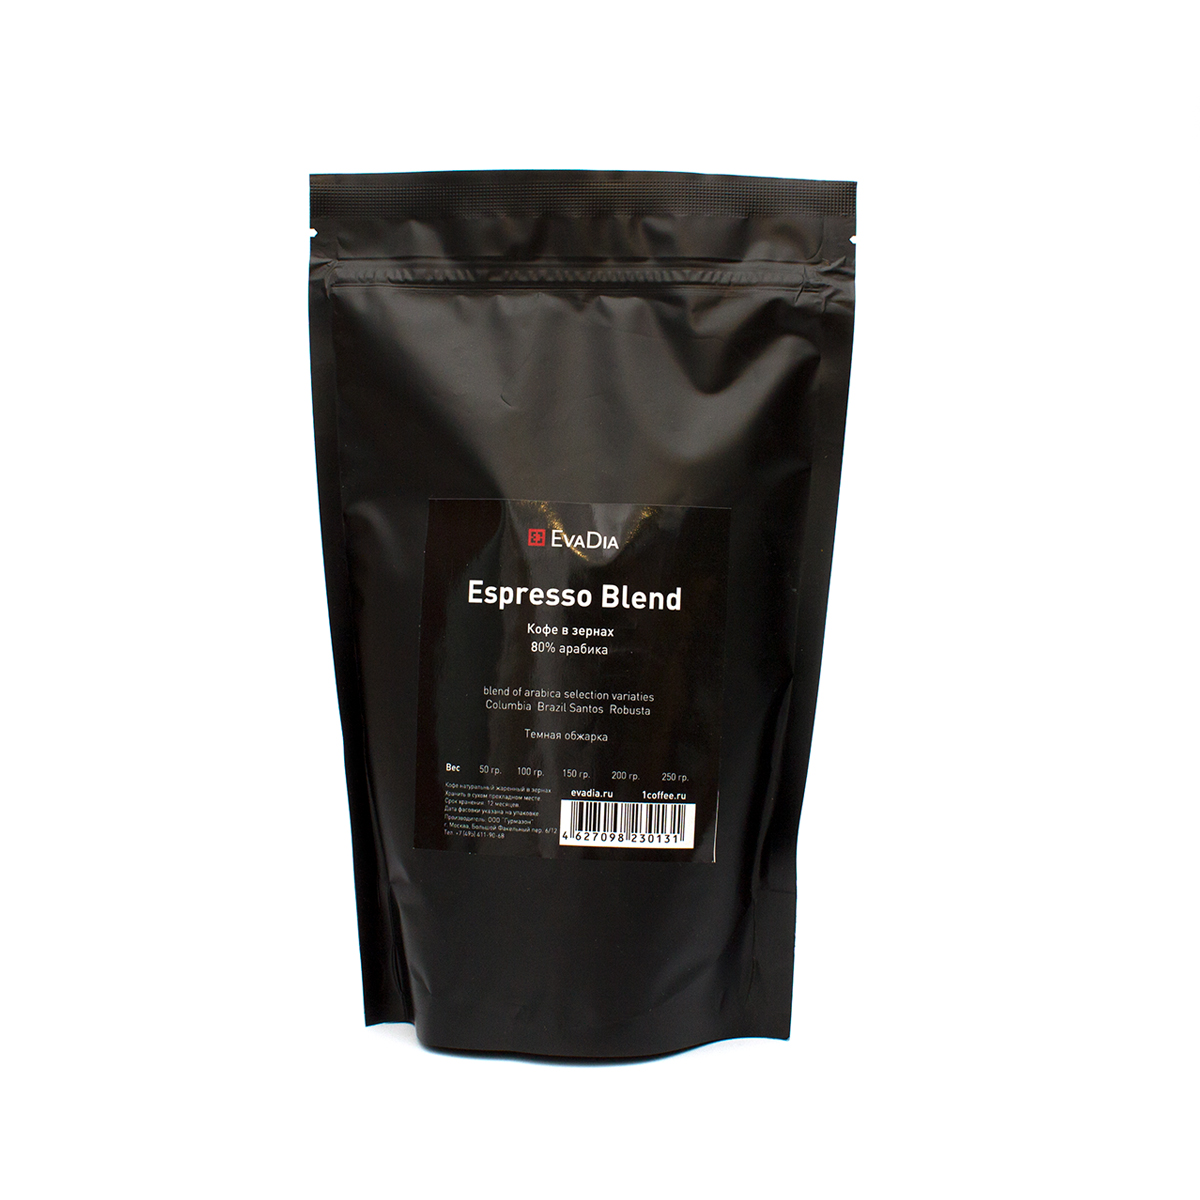 Кофе в зёрнах EvaDia ESPRESSO BLEND, свежеобжаренный, эспрессо, dark roast, 250 г 2017 new edition zero 637u 24bit 192khz usb dac decoder headphone amplifier amp